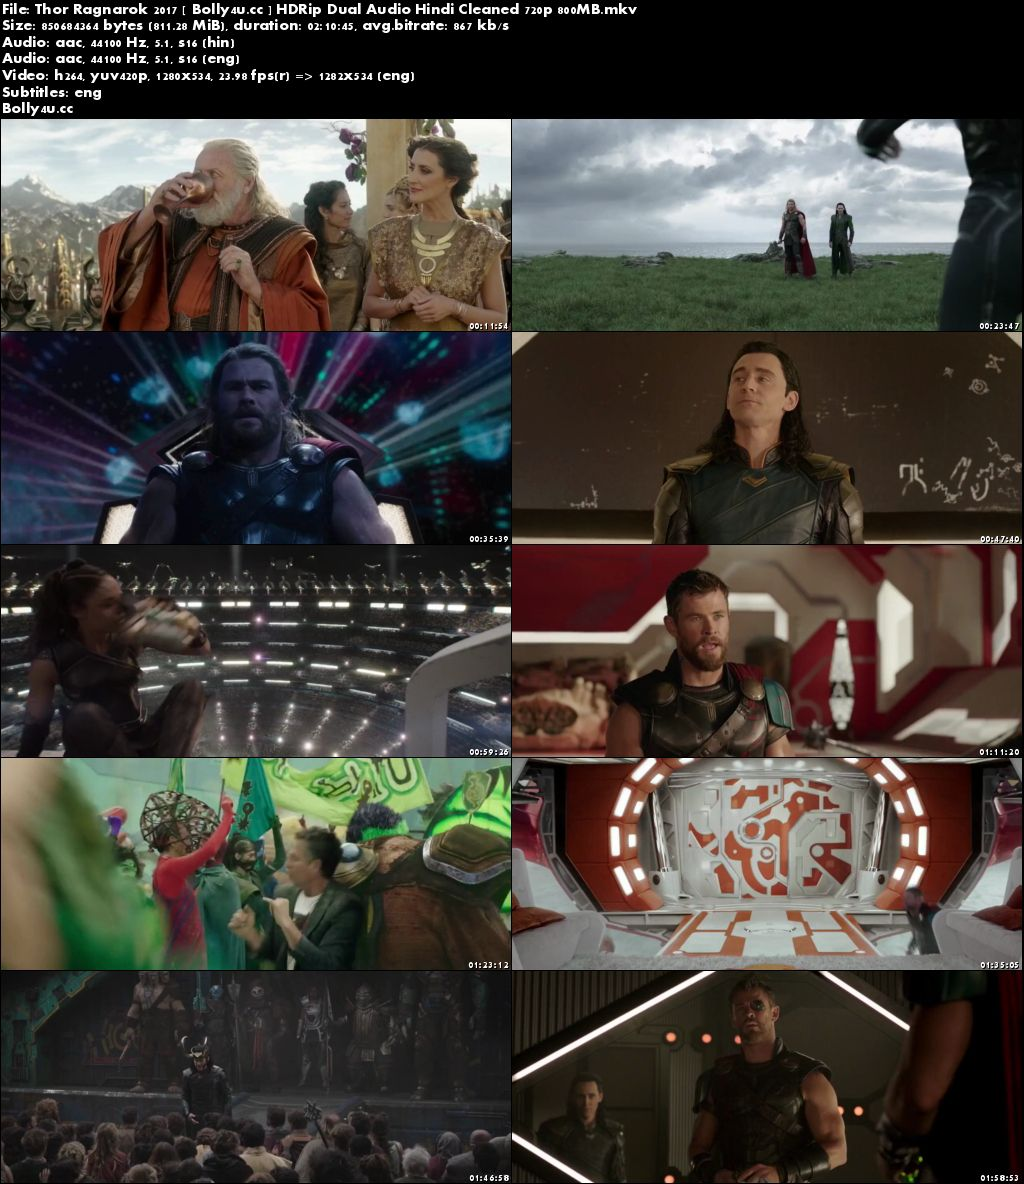 Thor Ragnarok 2017 HDRip 800MB Hindi Dual Audio 720p ESub Download